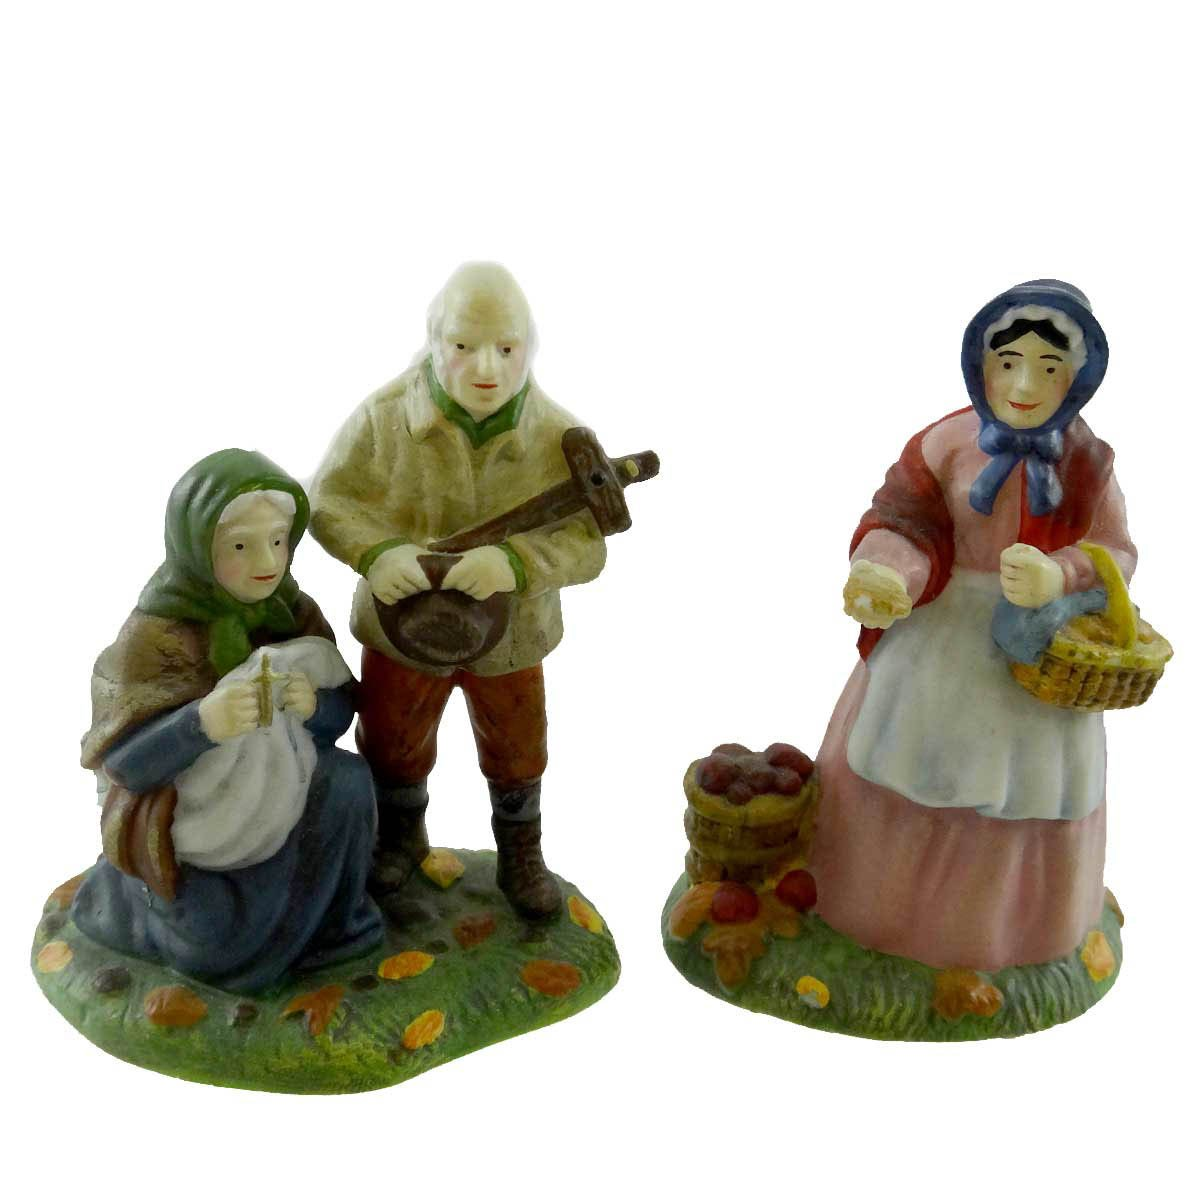 Dept 56 Accessories Begging For Soul Cakes Dickens' Village Halloween - Porcelain 2.25 IN